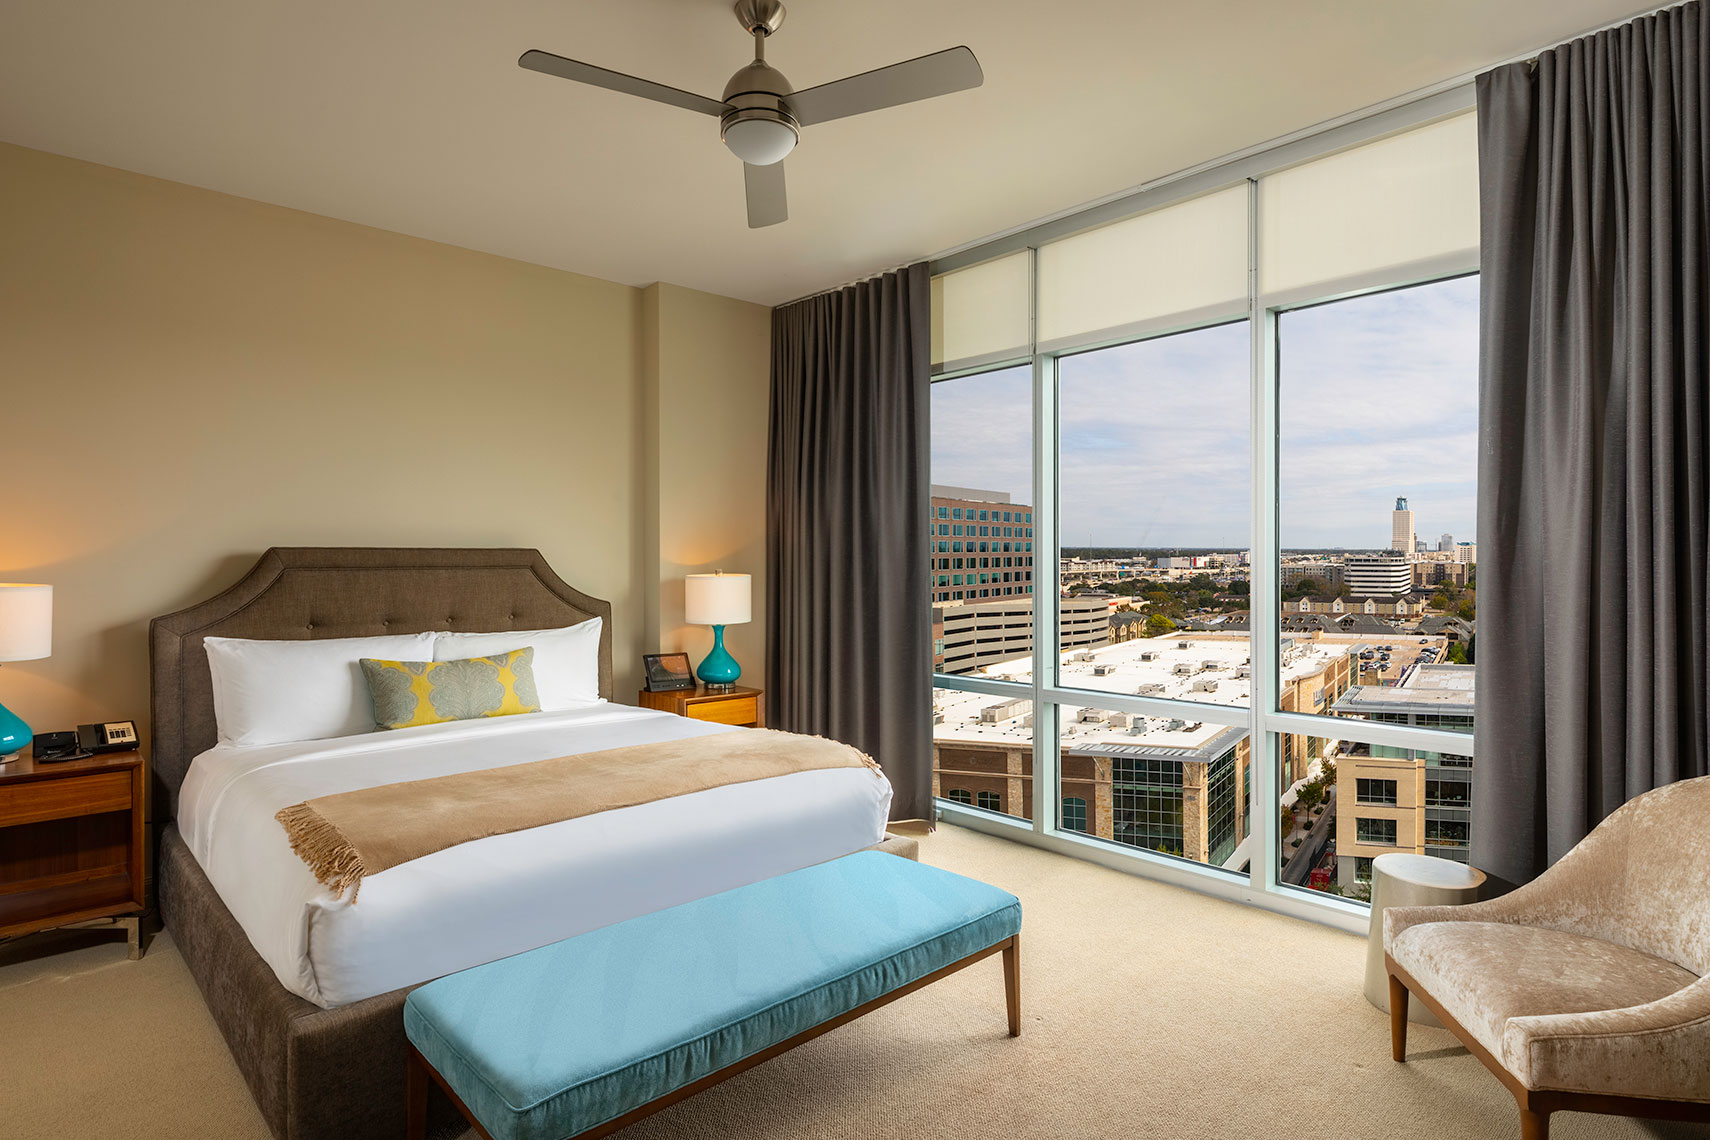 Hotel room in Hotel Sorella at CityCentre by Houston Architectural Photographer Shannon O